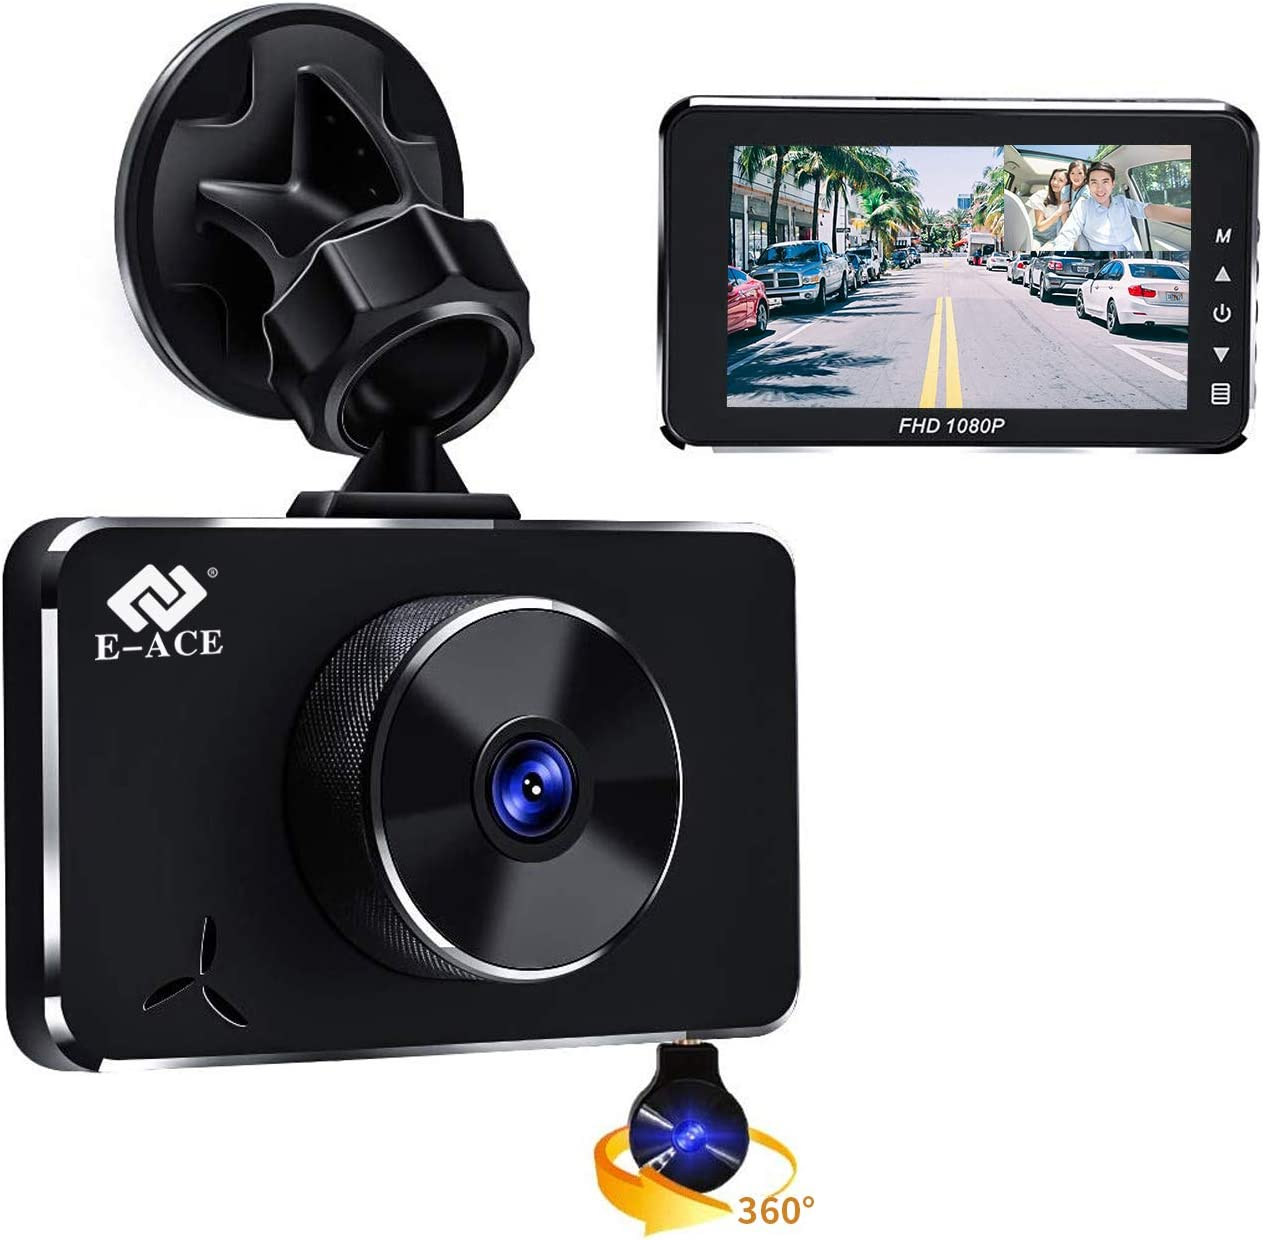 E-ACE Dual Dash Cam for Cars 1080p Front and Cabin Inside Cameras 360 Degree Rotatable Camera with Night Vision, G-Sensor, Loop Recording,WDR,Motion Detection [Alloy Shell]